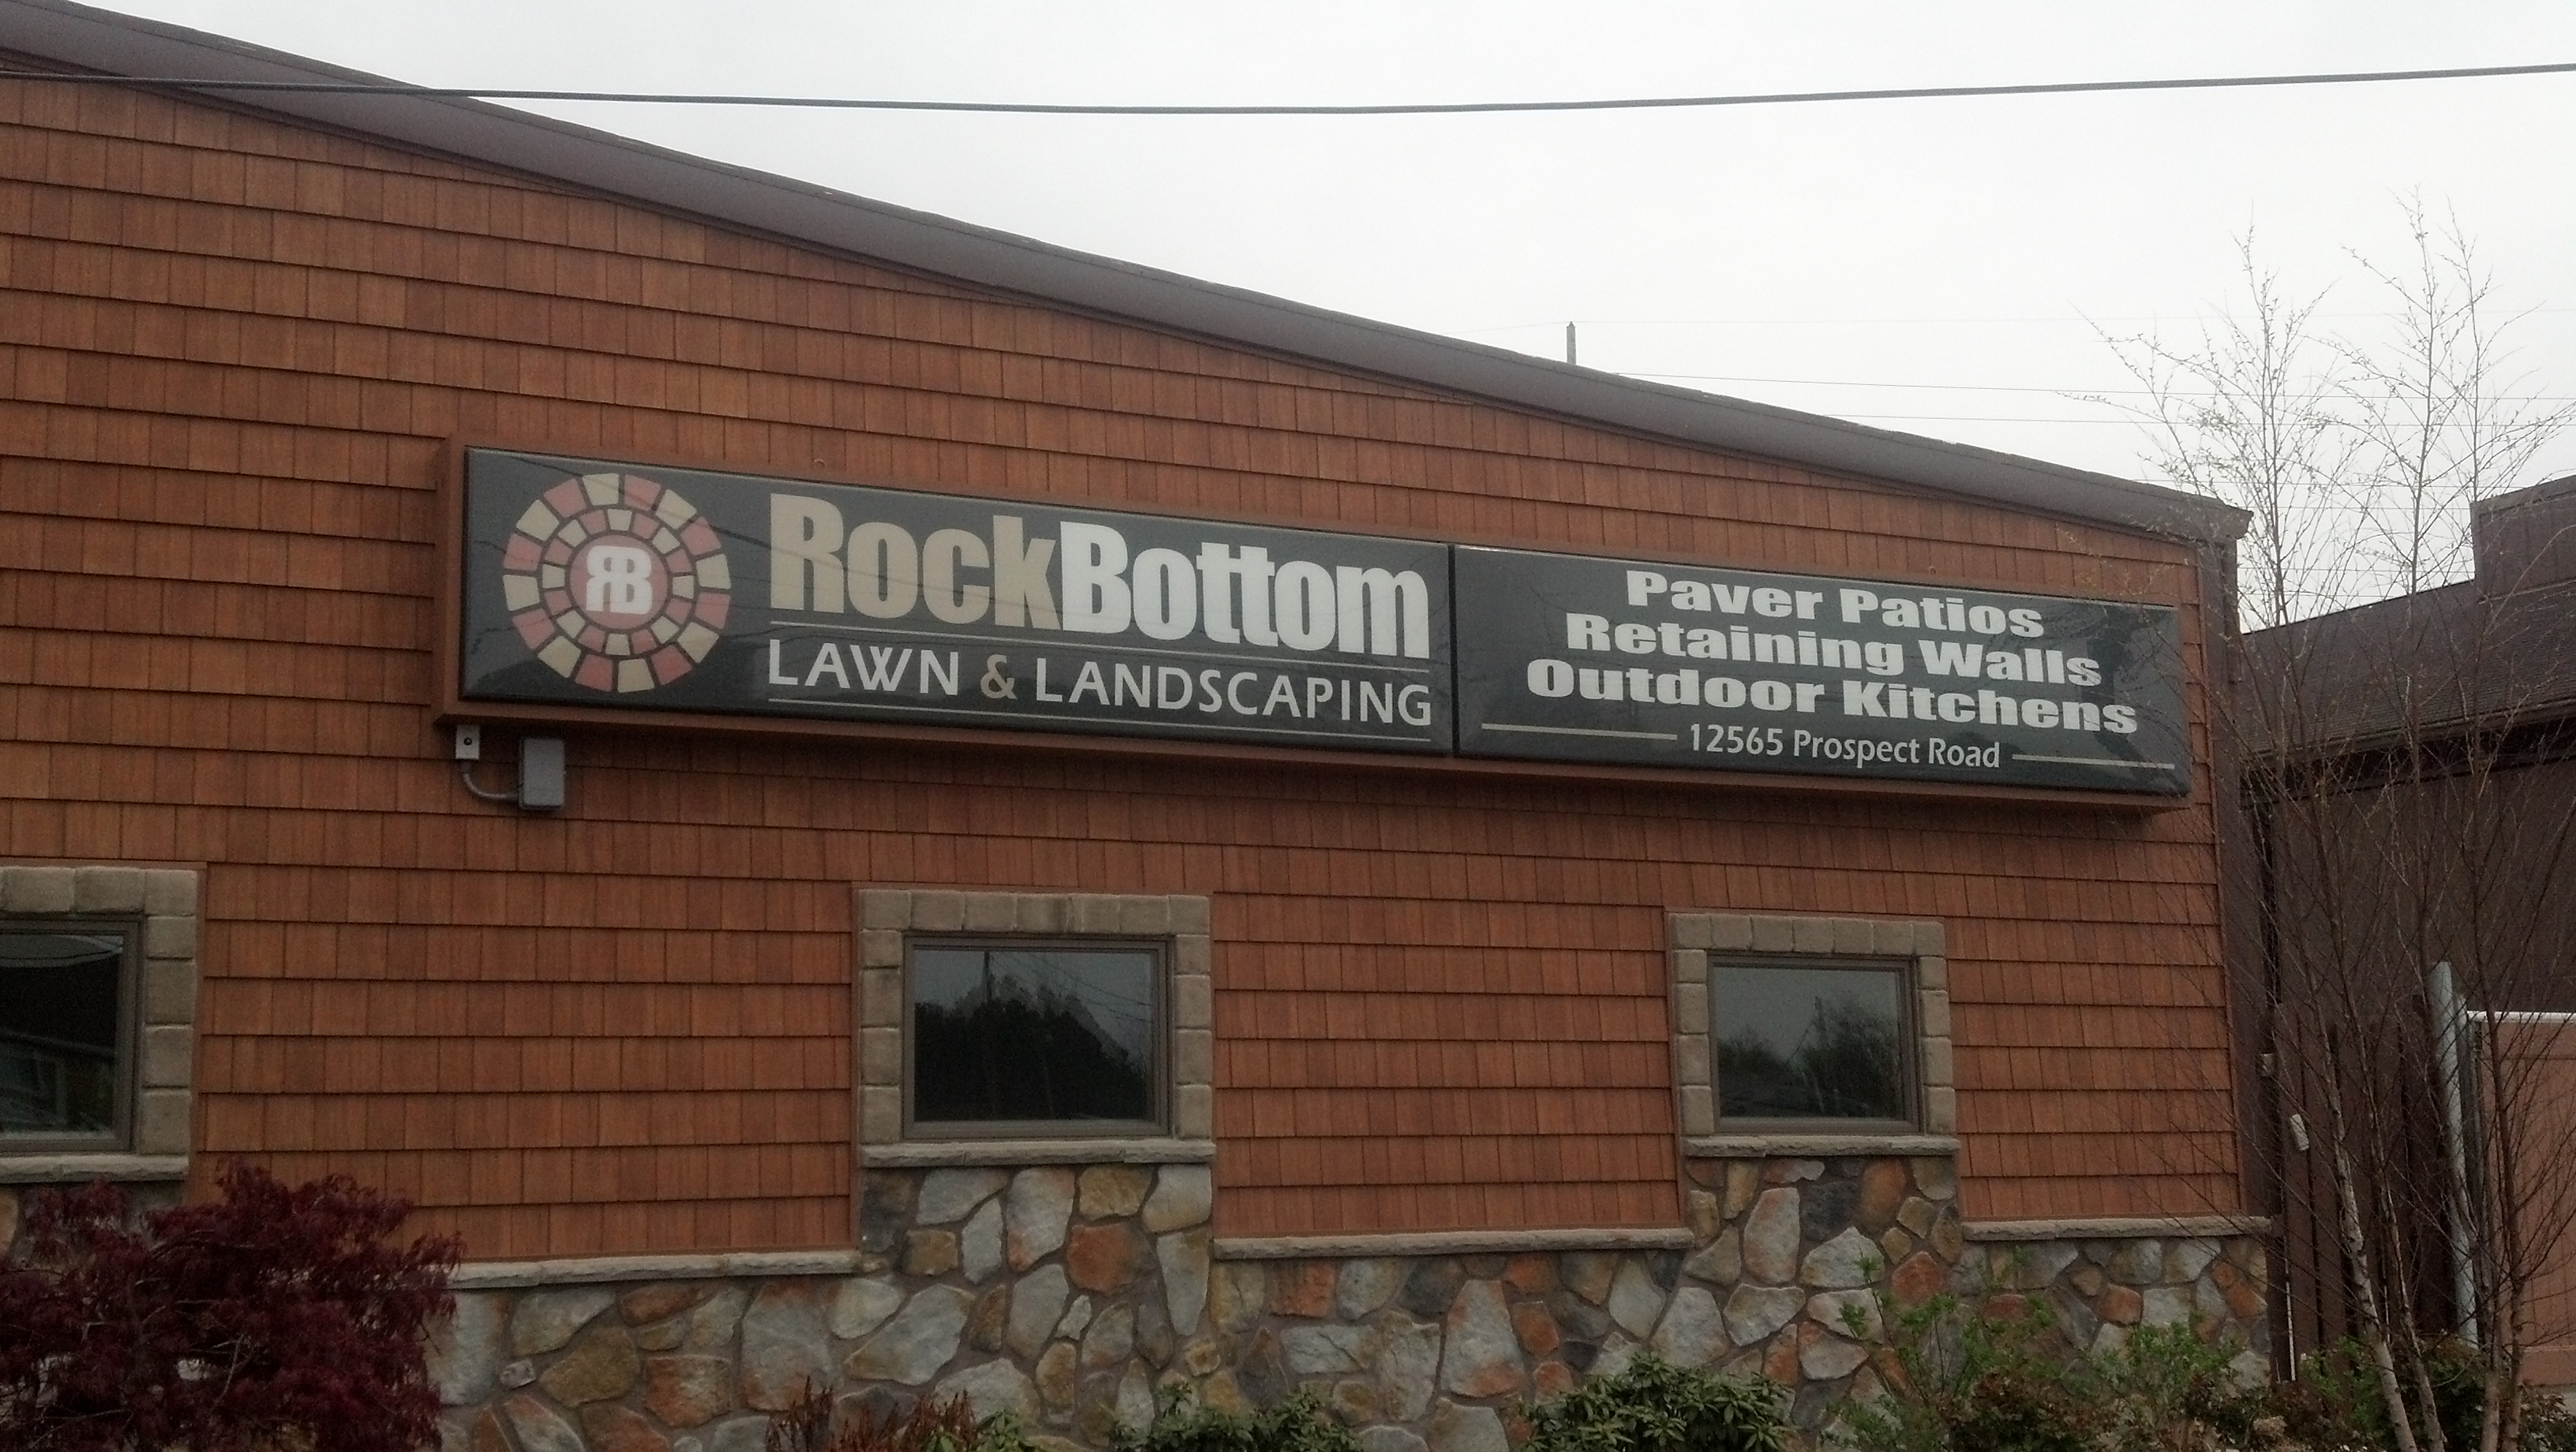 Rock Bottom Landscape